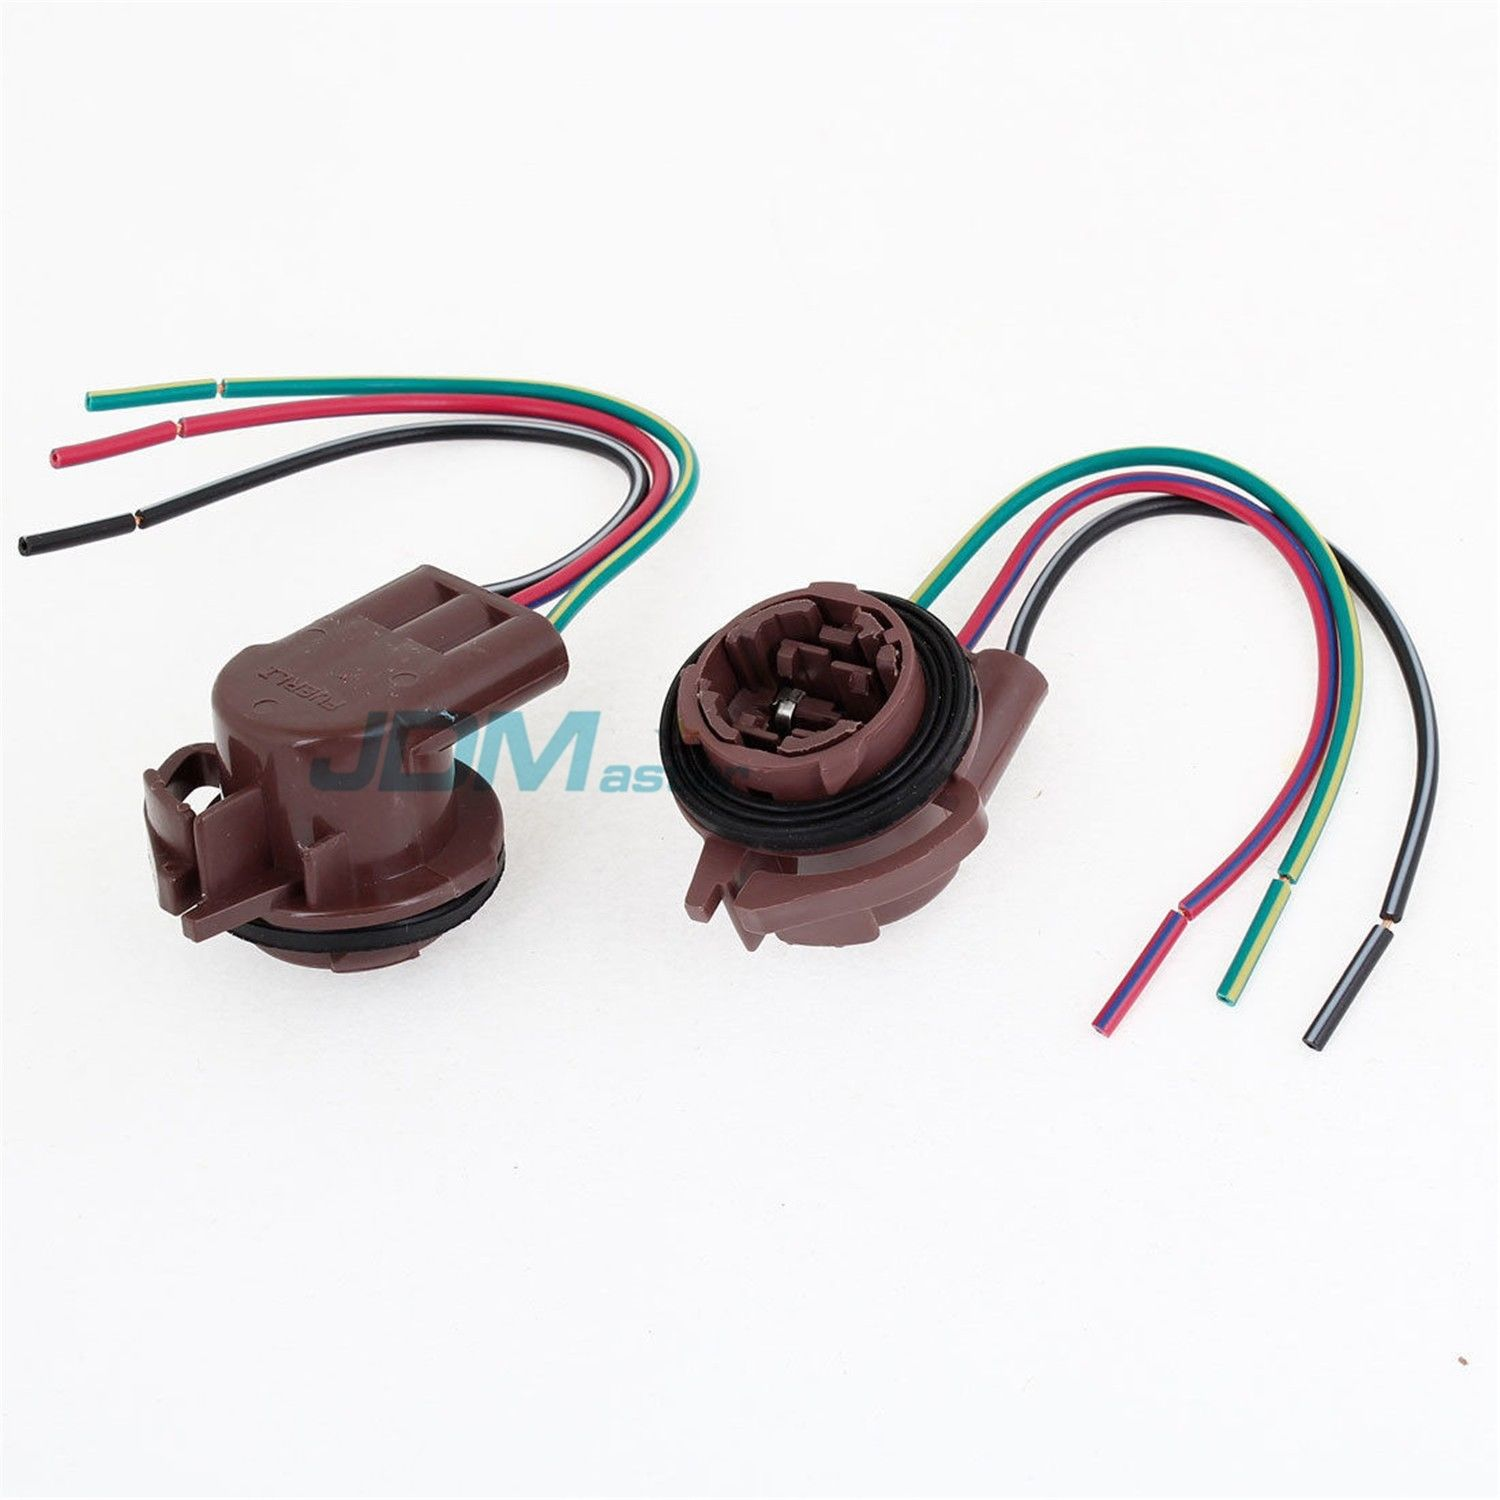 Dc  pound Motor Wiring Diagram also 259740 additionally Shunt Dc Motor Speed Control Wiring Diagram furthermore 131598924627 moreover Uxcell Wiring Diagram. on stab shunt dc motor